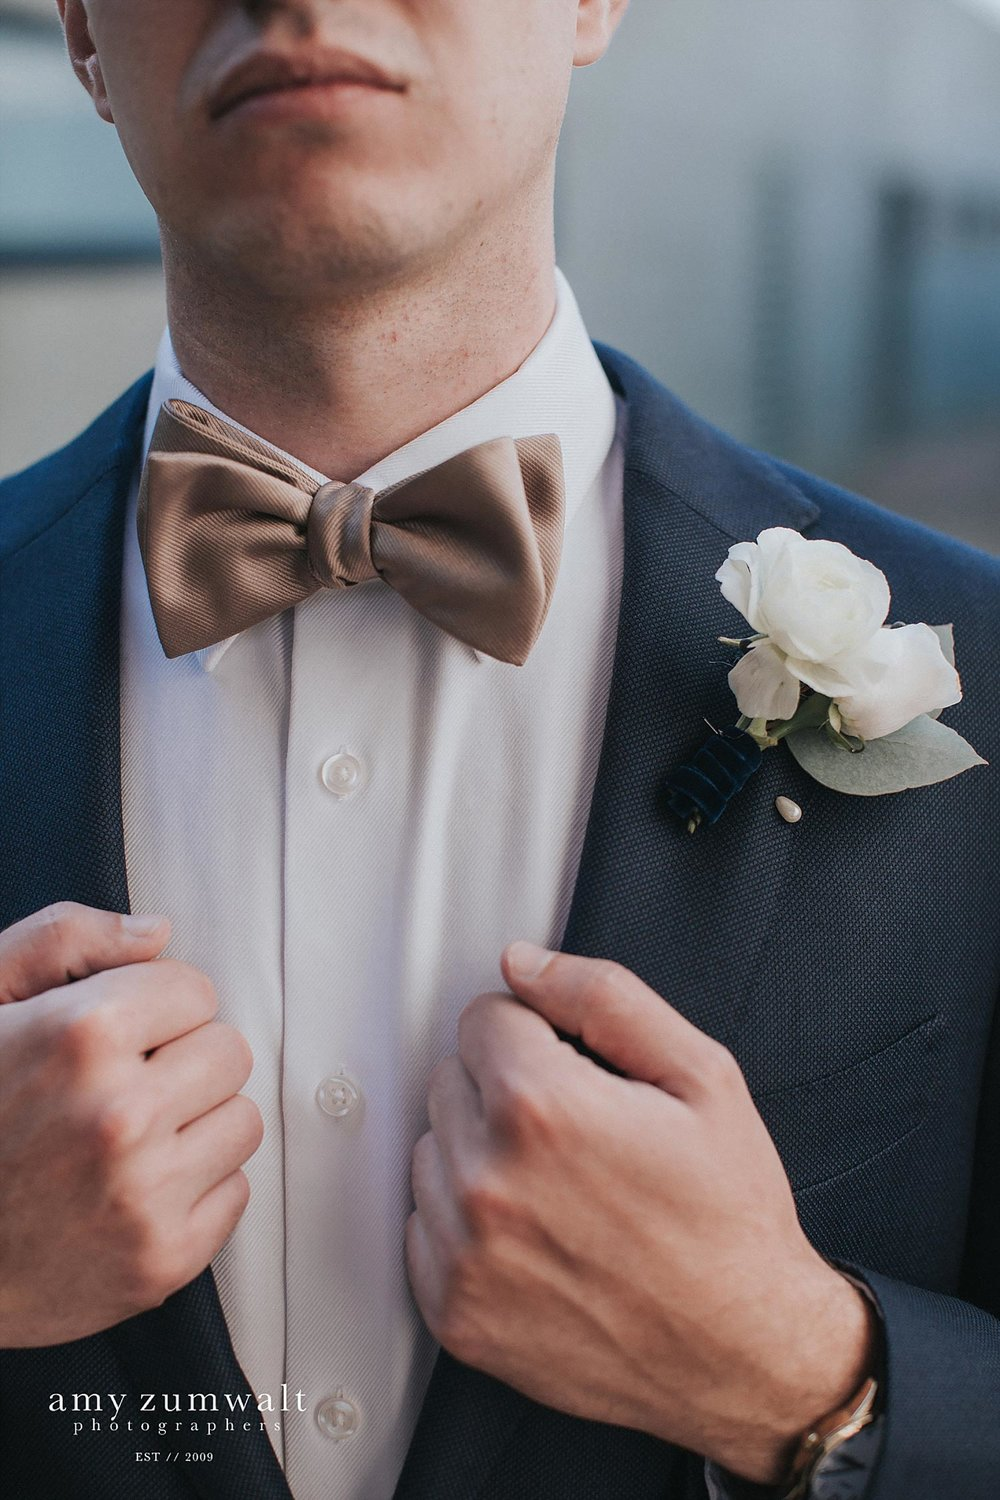 groom wearing a navy suit and bowtie with a velvet ribbon boutonniere